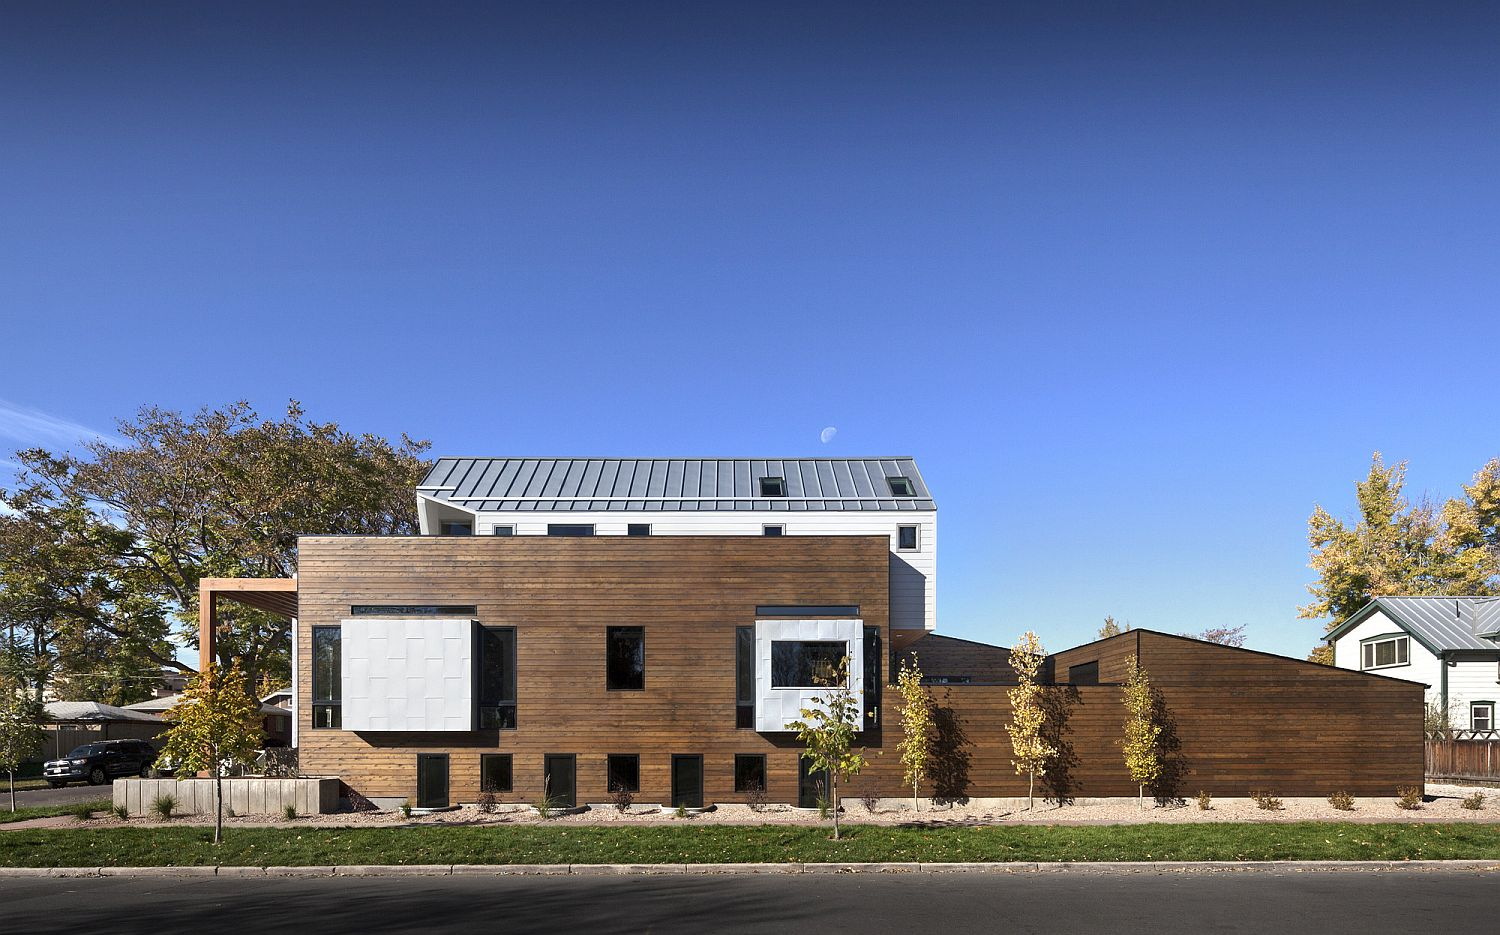 Revamped contemporary home in denver lifted above the street level